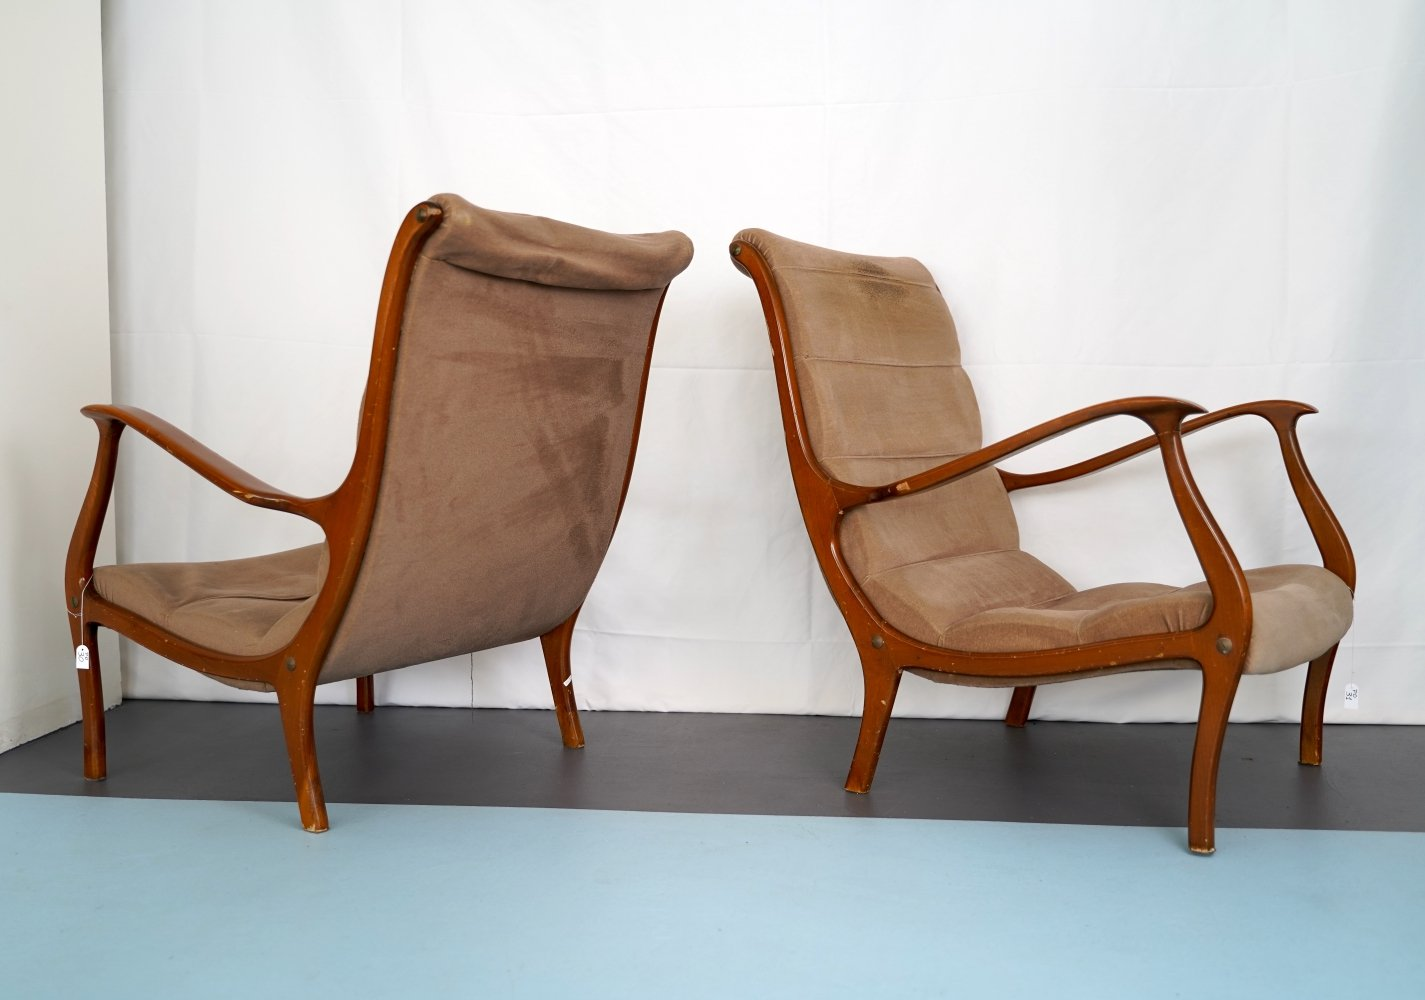 Set of two armchairs by Ezio Longhi for Elam, Italy 1950s